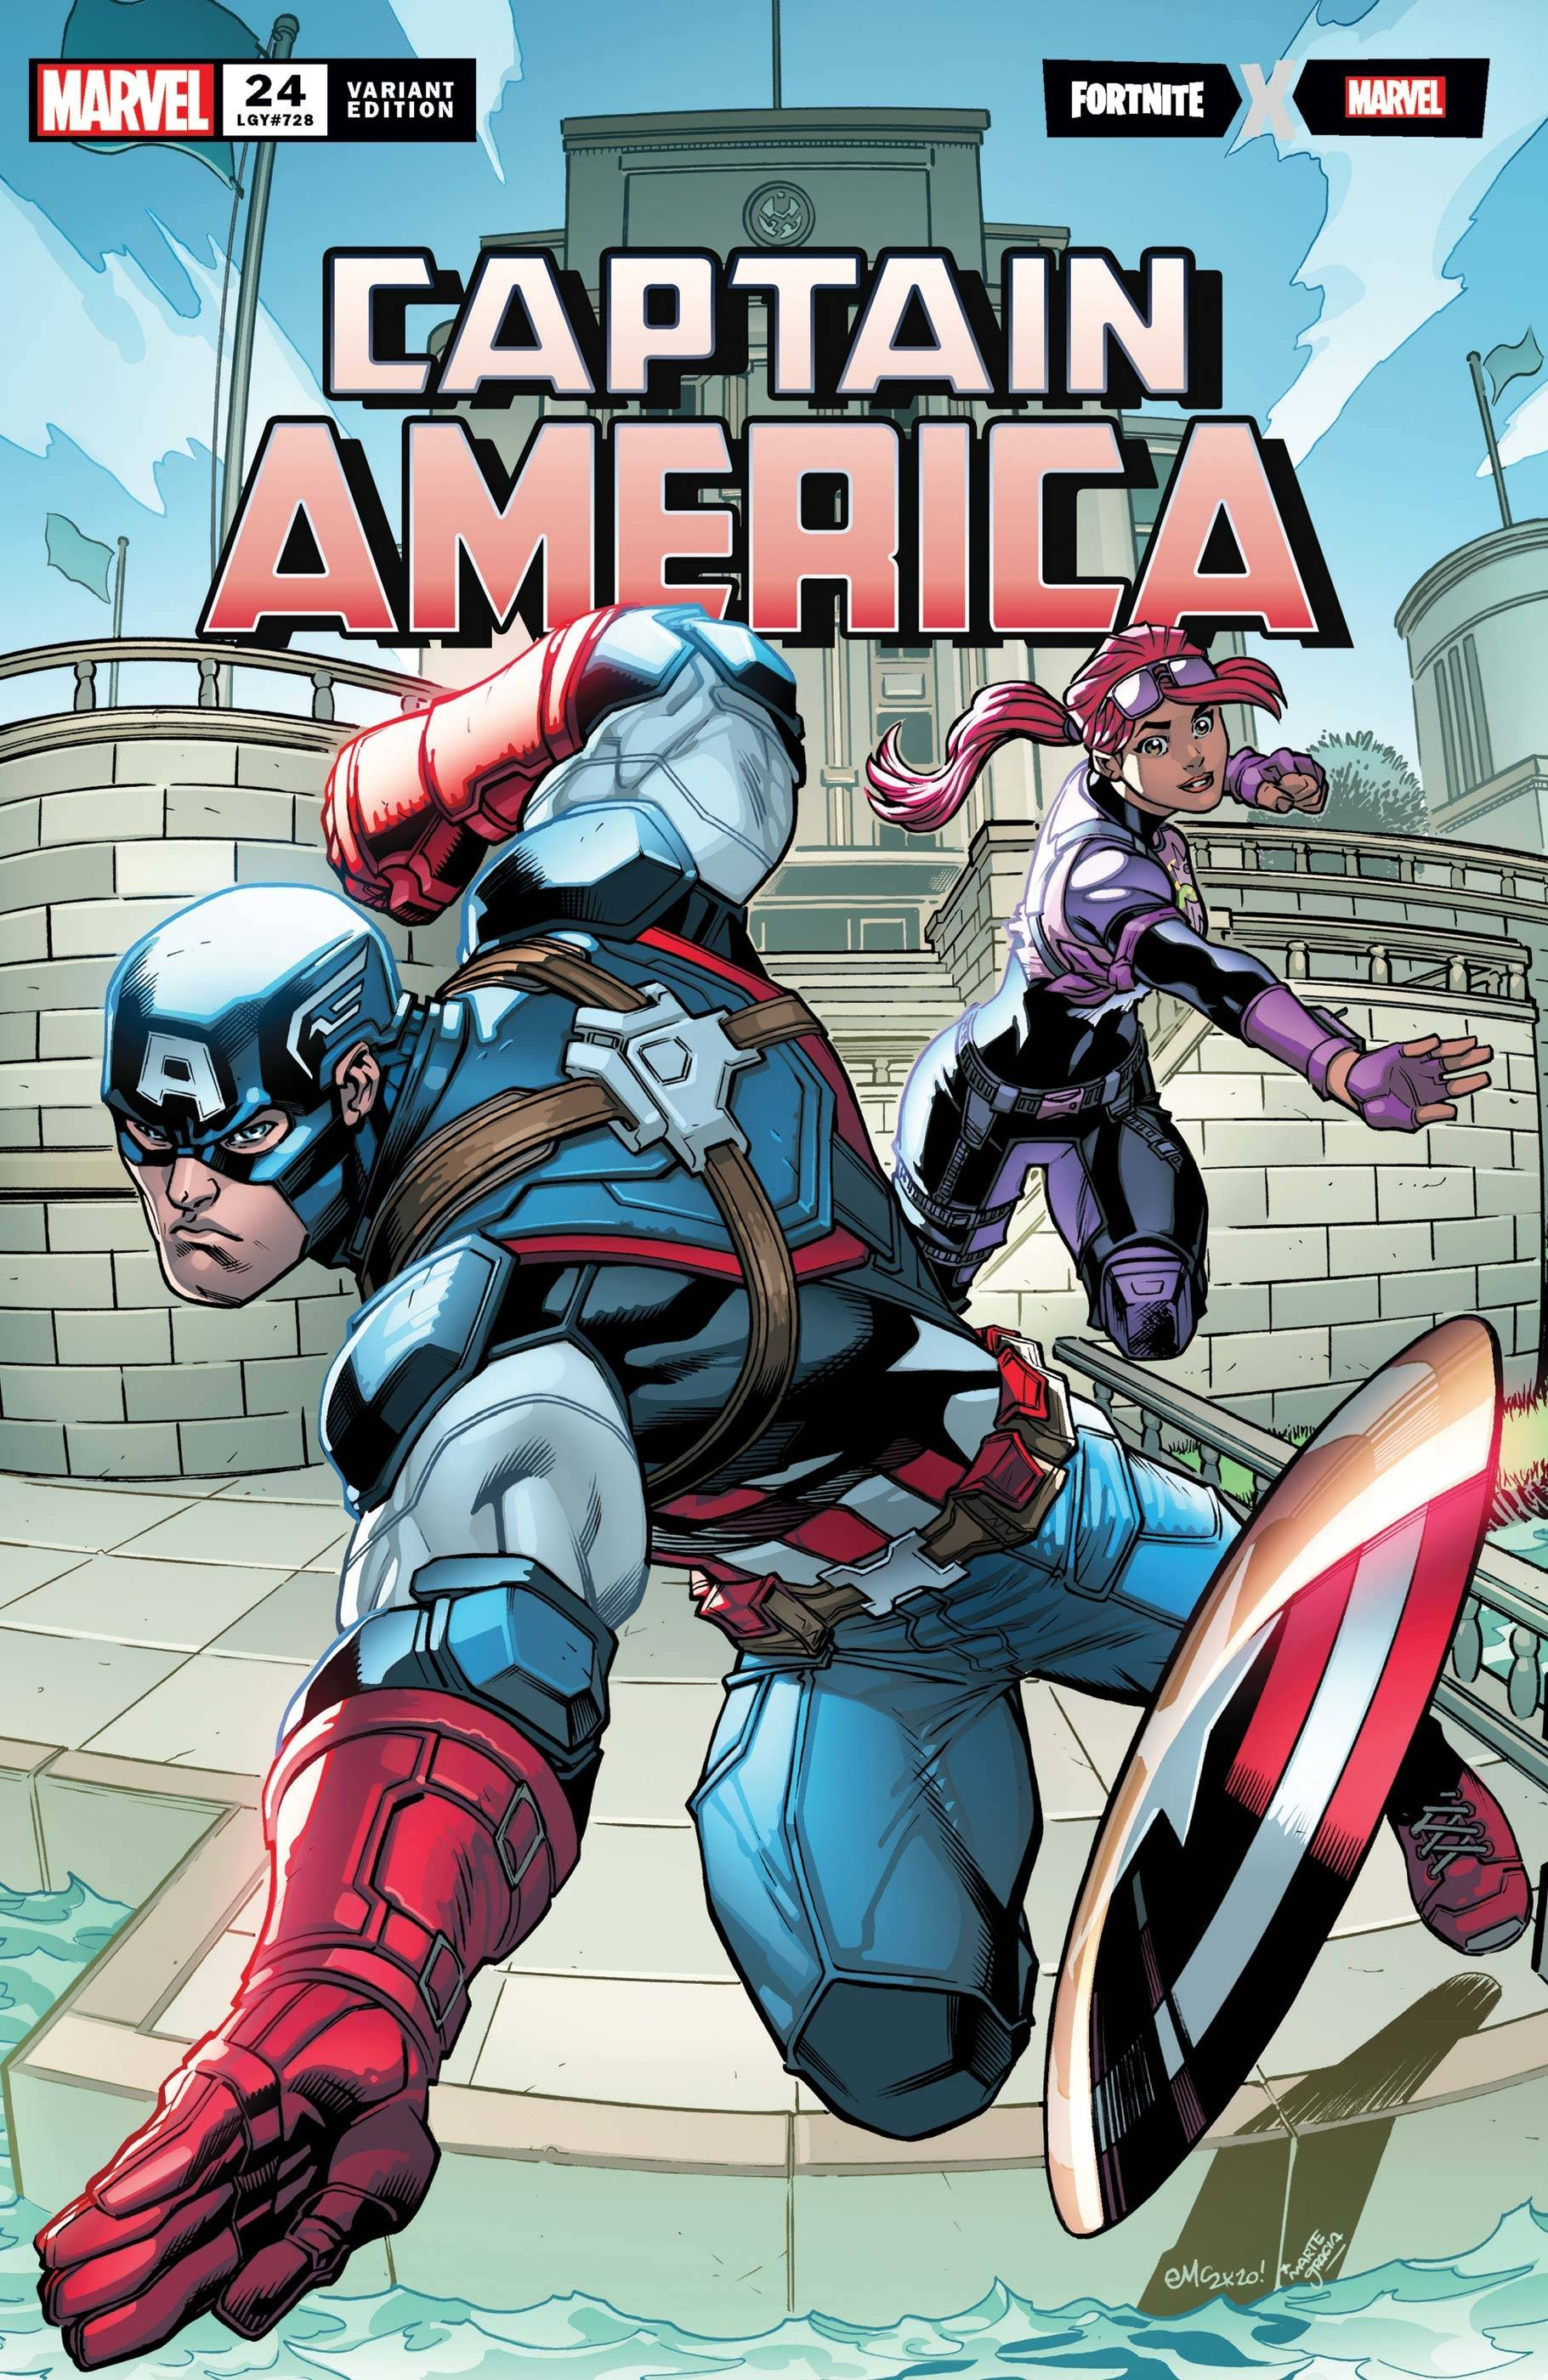 Captain America Vol 9 24 Fortnite Variant.jpg